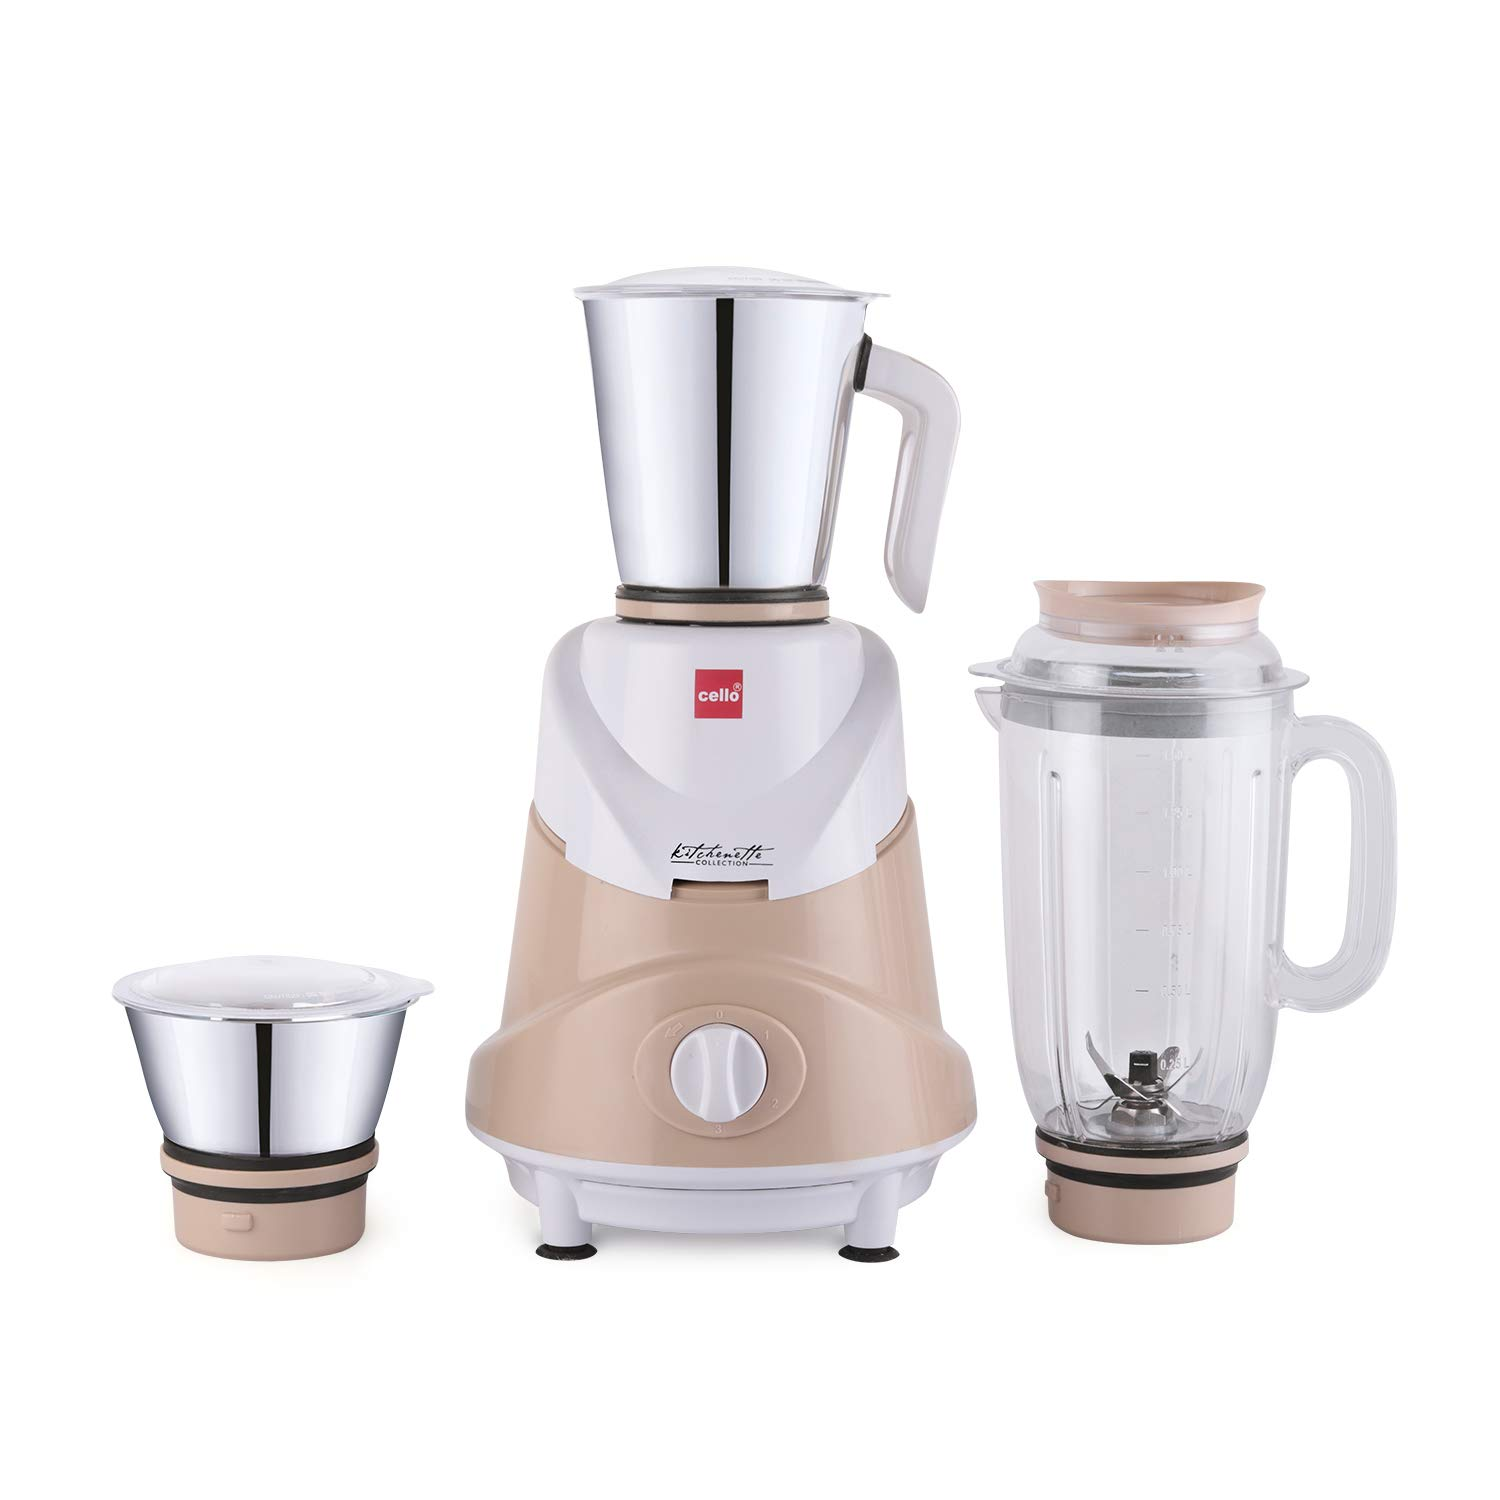 Cello CLO_ERTGA_JCR_750 750W Mixer Grinder, Beige, Cream